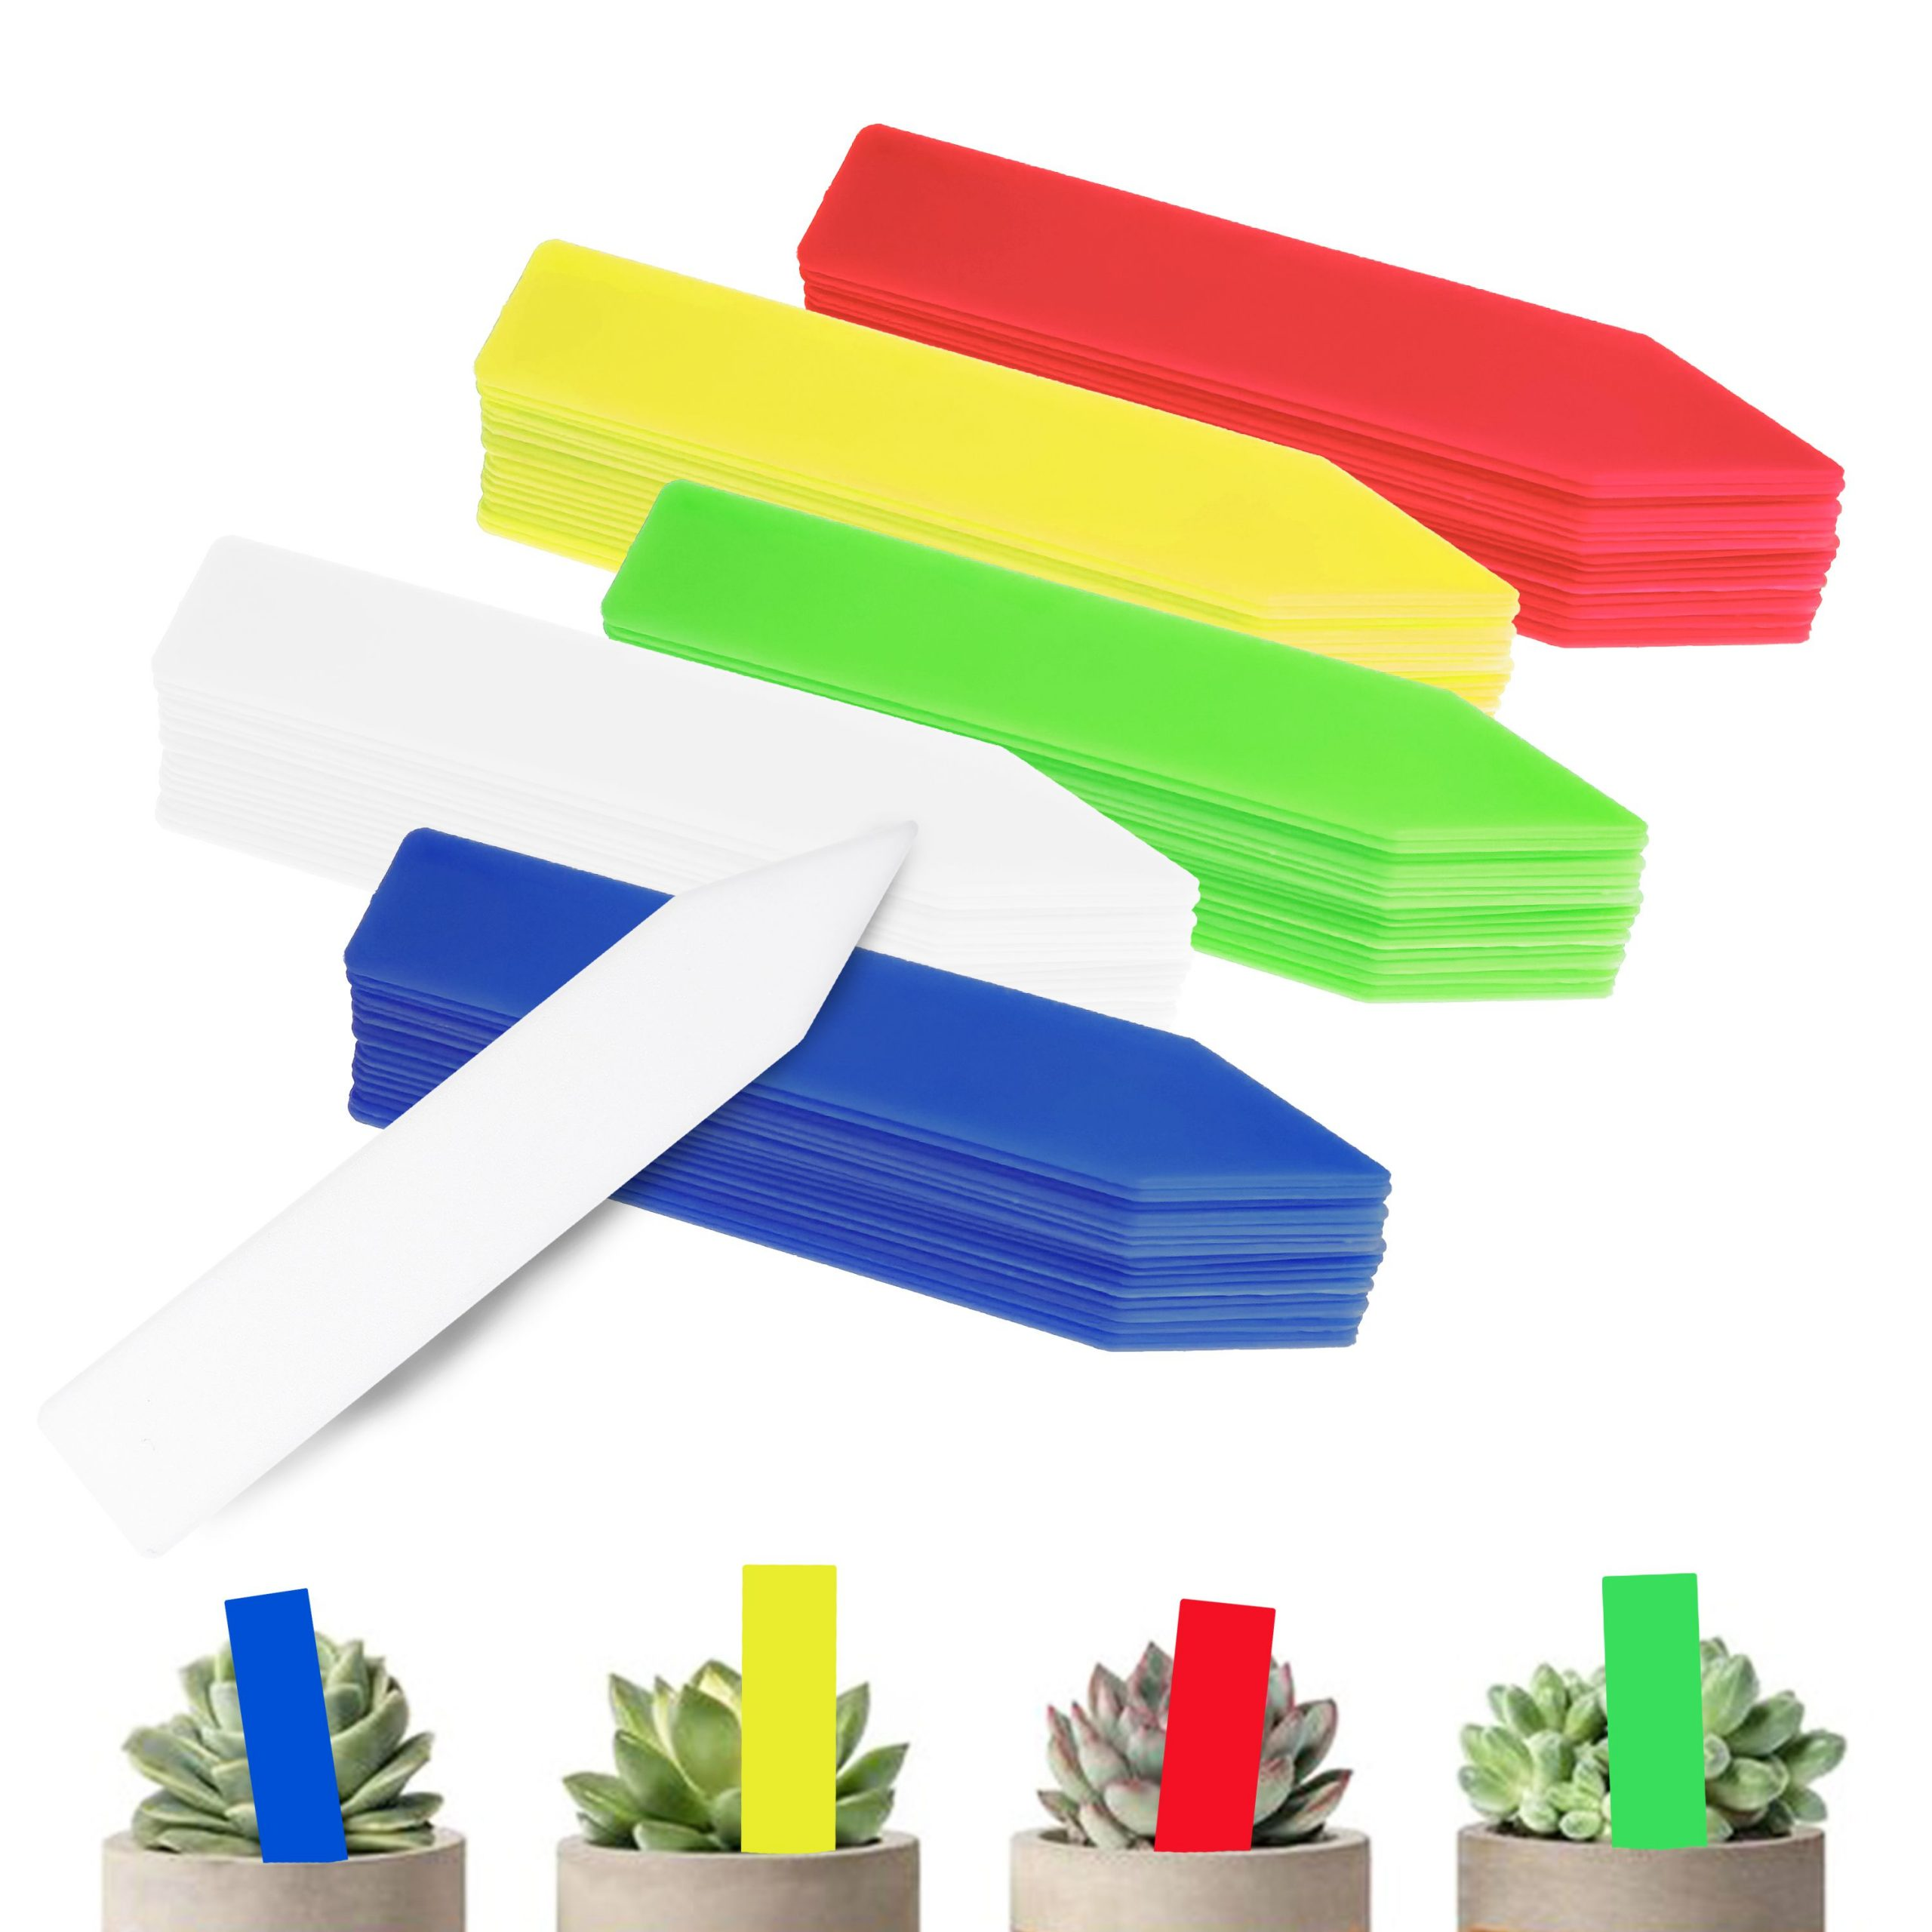 Garden-Tags-Plant-Markers-Plant-Tags-Mix-Colors-100-Pcs